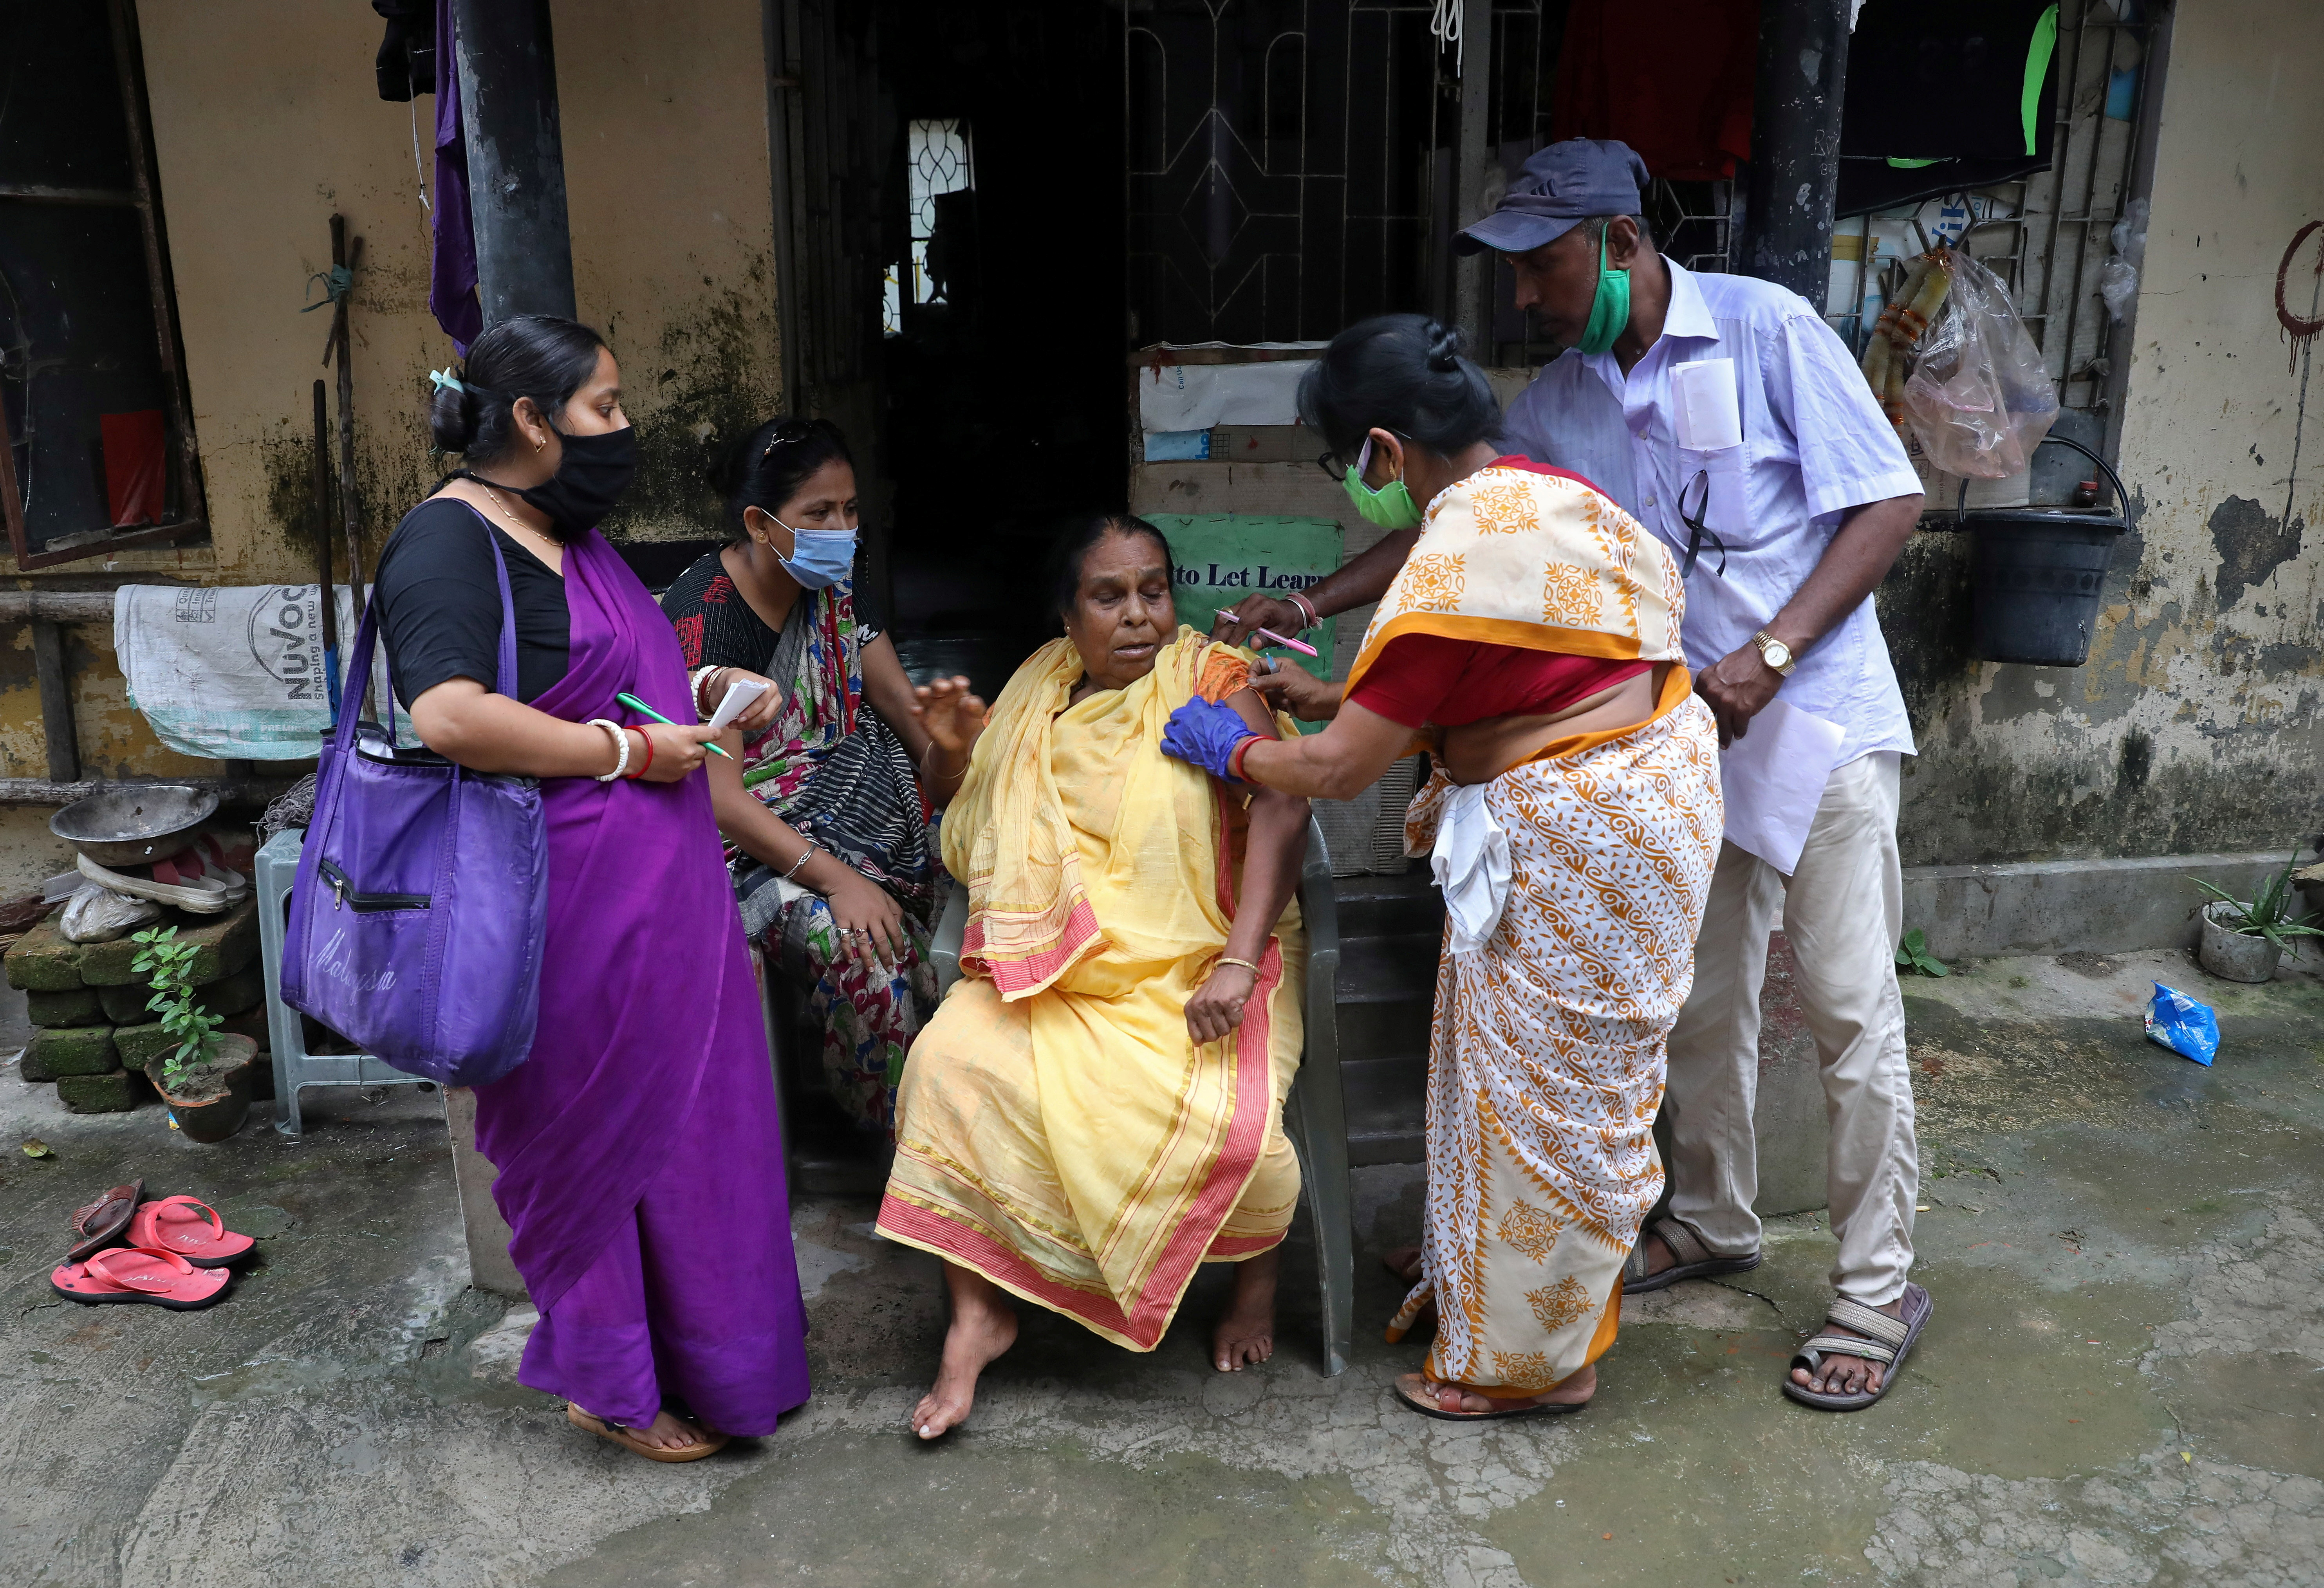 Rekha Ghosh, 64, reacts a she receives a dose of COVISHIELD, a coronavirus disease vaccine manufactured by Serum Institute of India, outside her house during a door-to-door vaccination drive in Kolkata, India, August 12, 2021. REUTERS/Rupak De Chowdhuri - RC2L3P9PCKR5